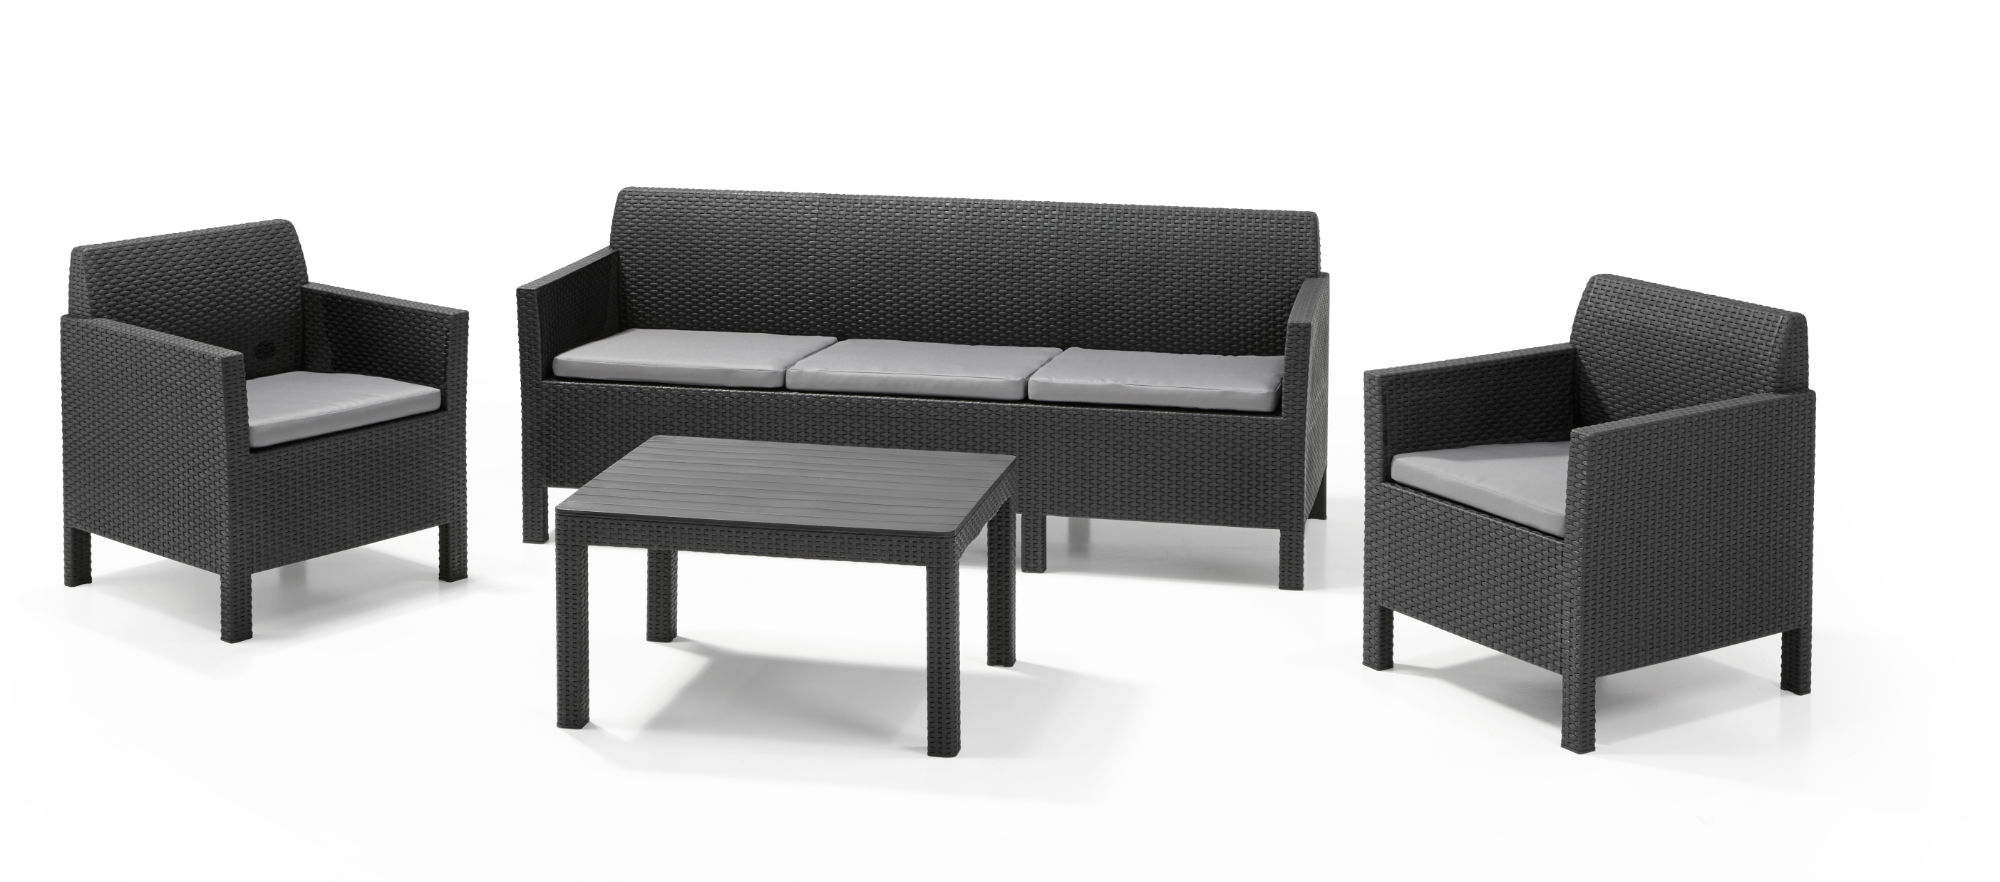 Allibert orlando ensemble de salon graphite canap trois - Salon de jardin allibert hawaii lounge set ...